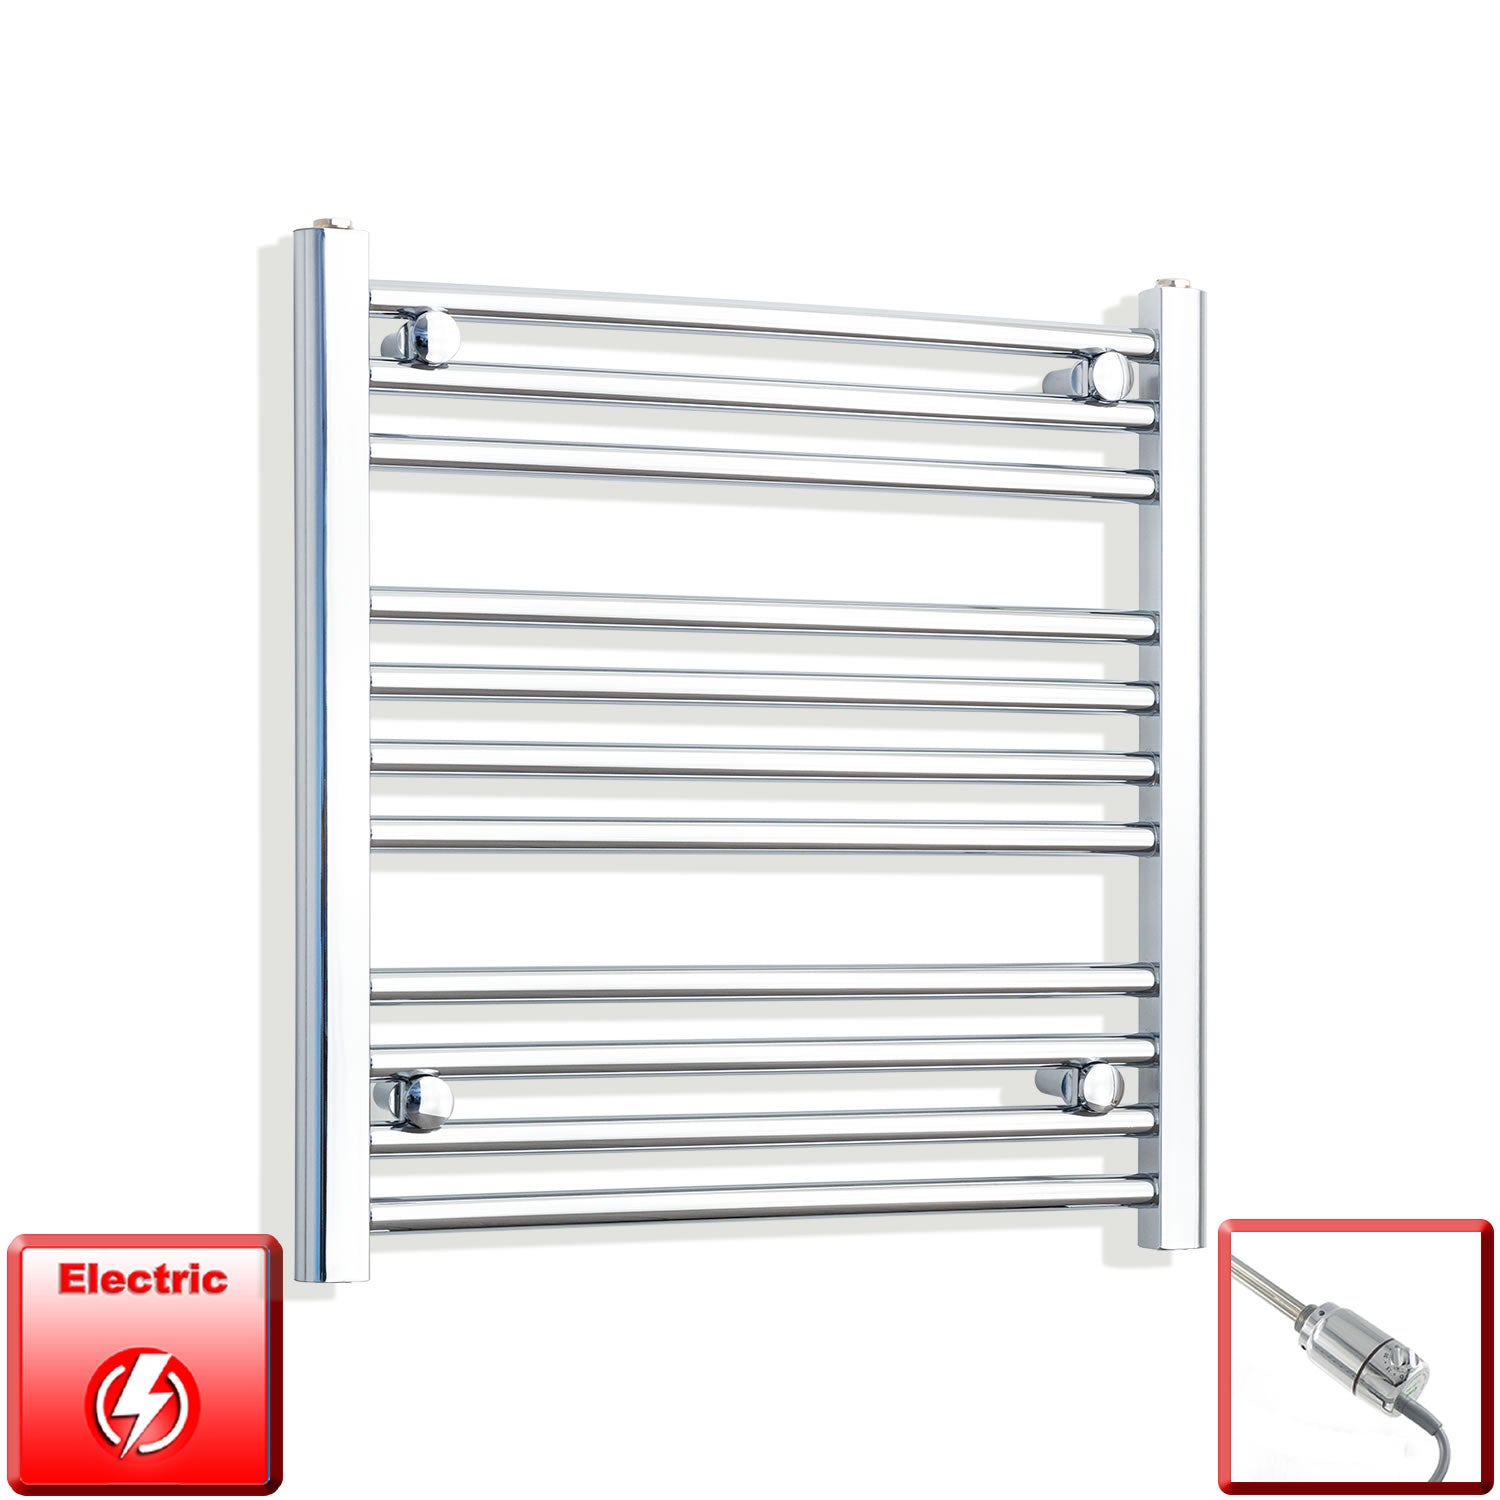 600mm High 650mm Wide Pre-Filled Electric Heated Towel Rail Radiator Straight Chrome